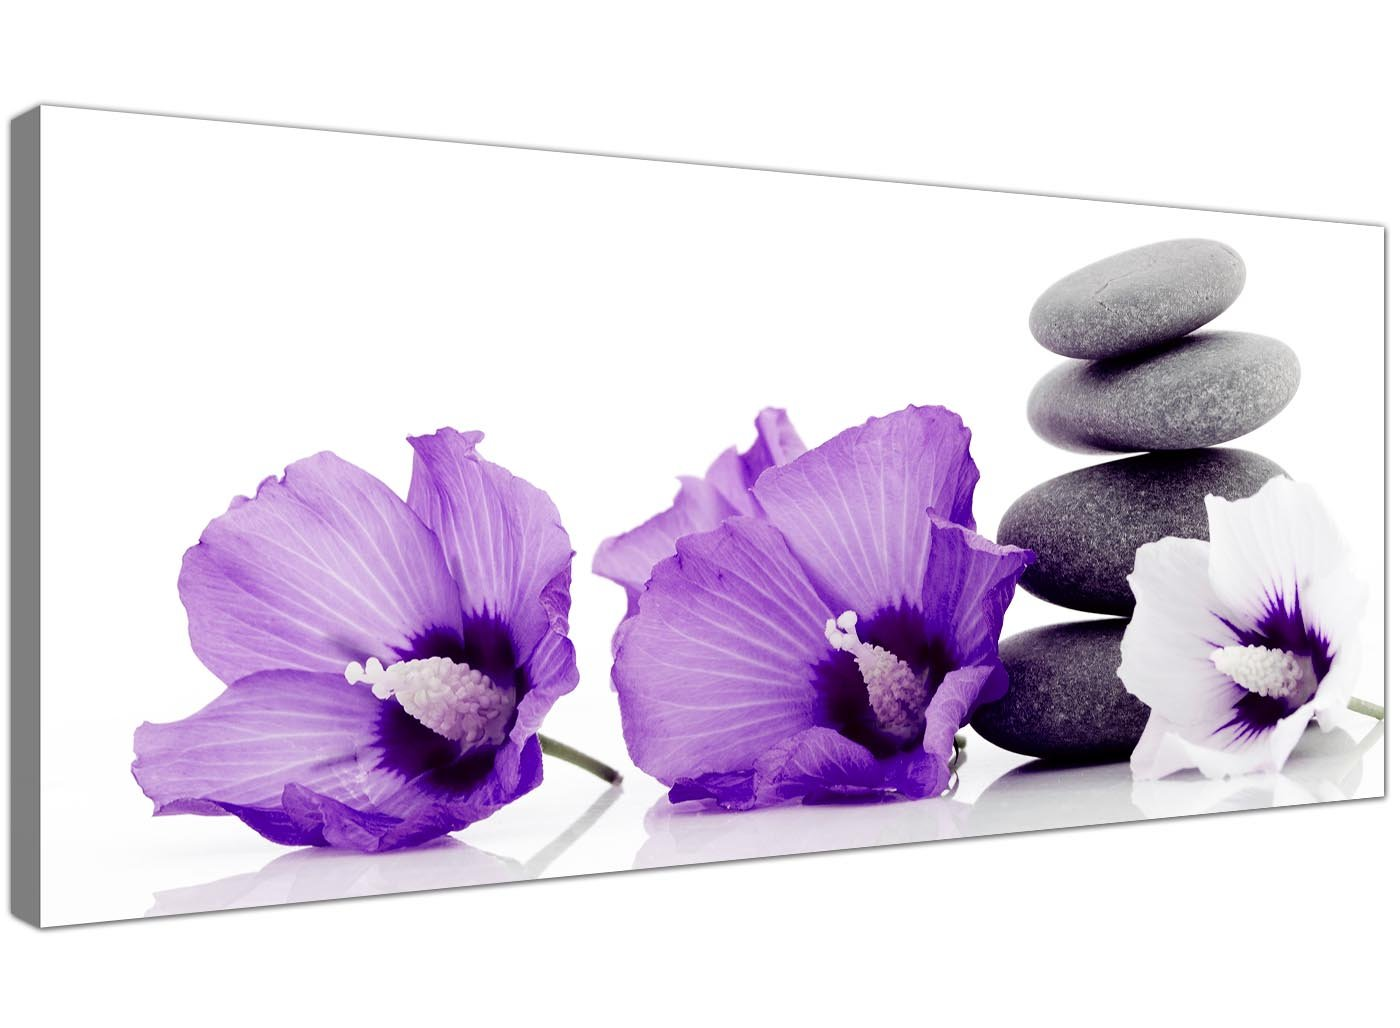 row of alliums purple wall art amazoncouk diy  tools - cheap canvas prints of purple flowers and grey pebbles  modern floral wallart